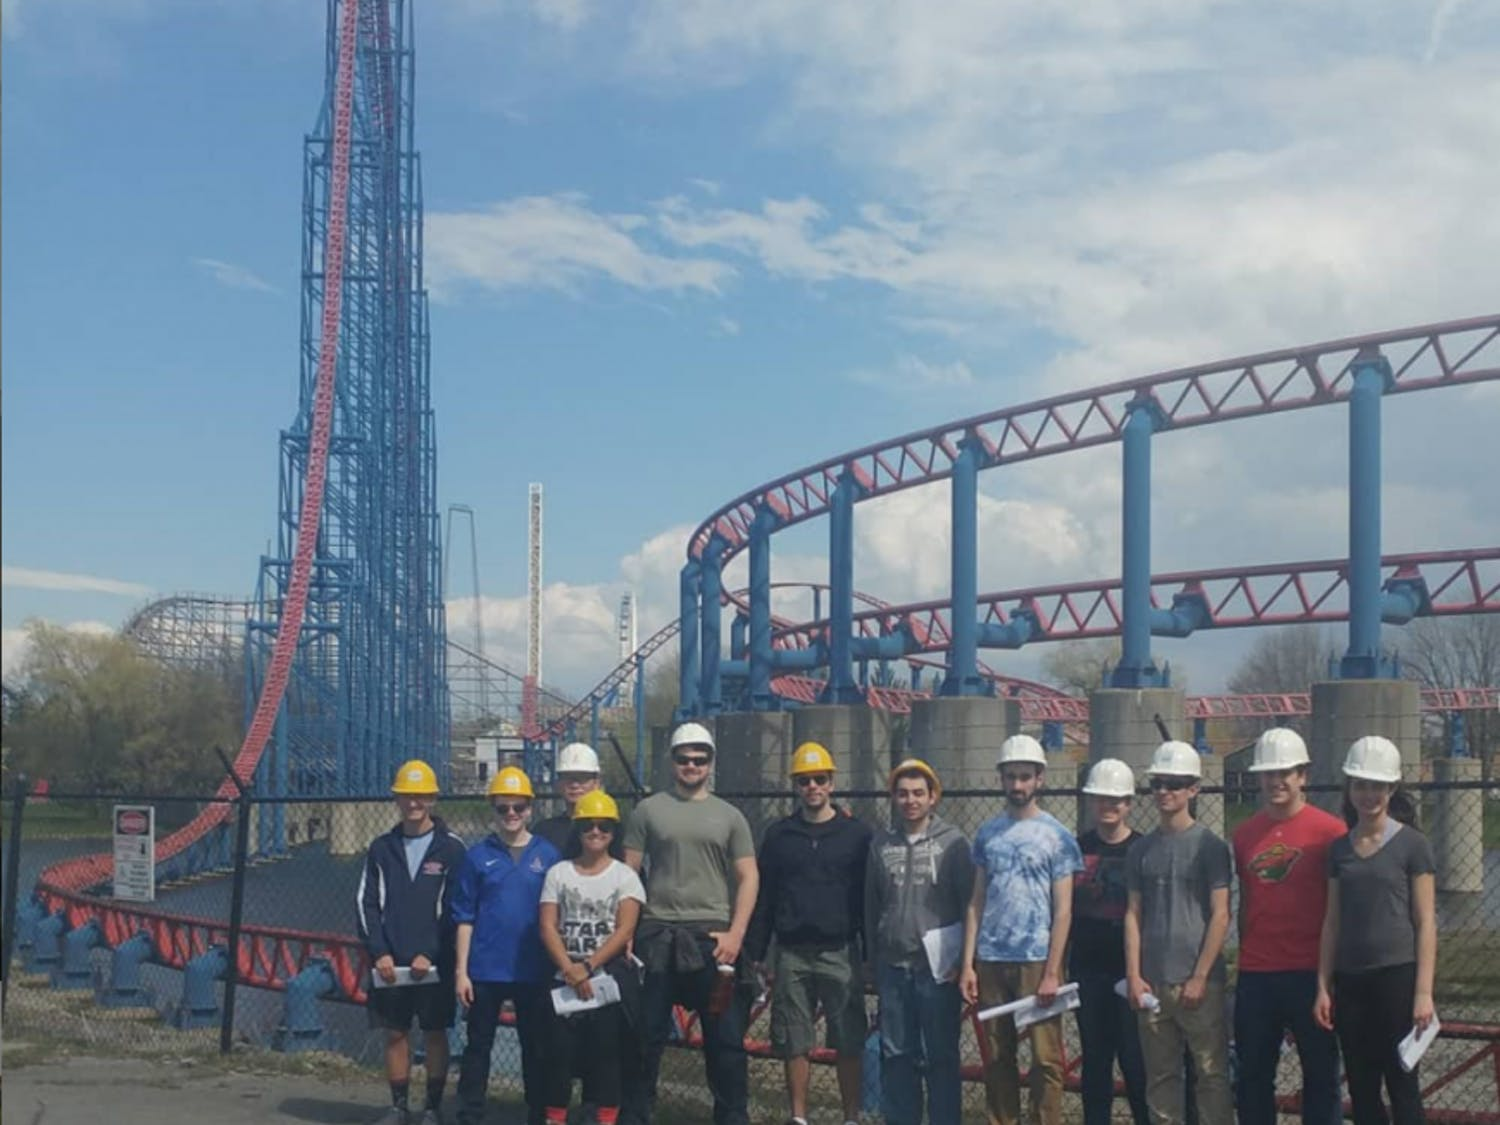 The Theme Park Engineering Club visits Darien Lake to learn about amusement park design. The club provides students with the opportunity to learn about what goes into building the world's roller coasters.